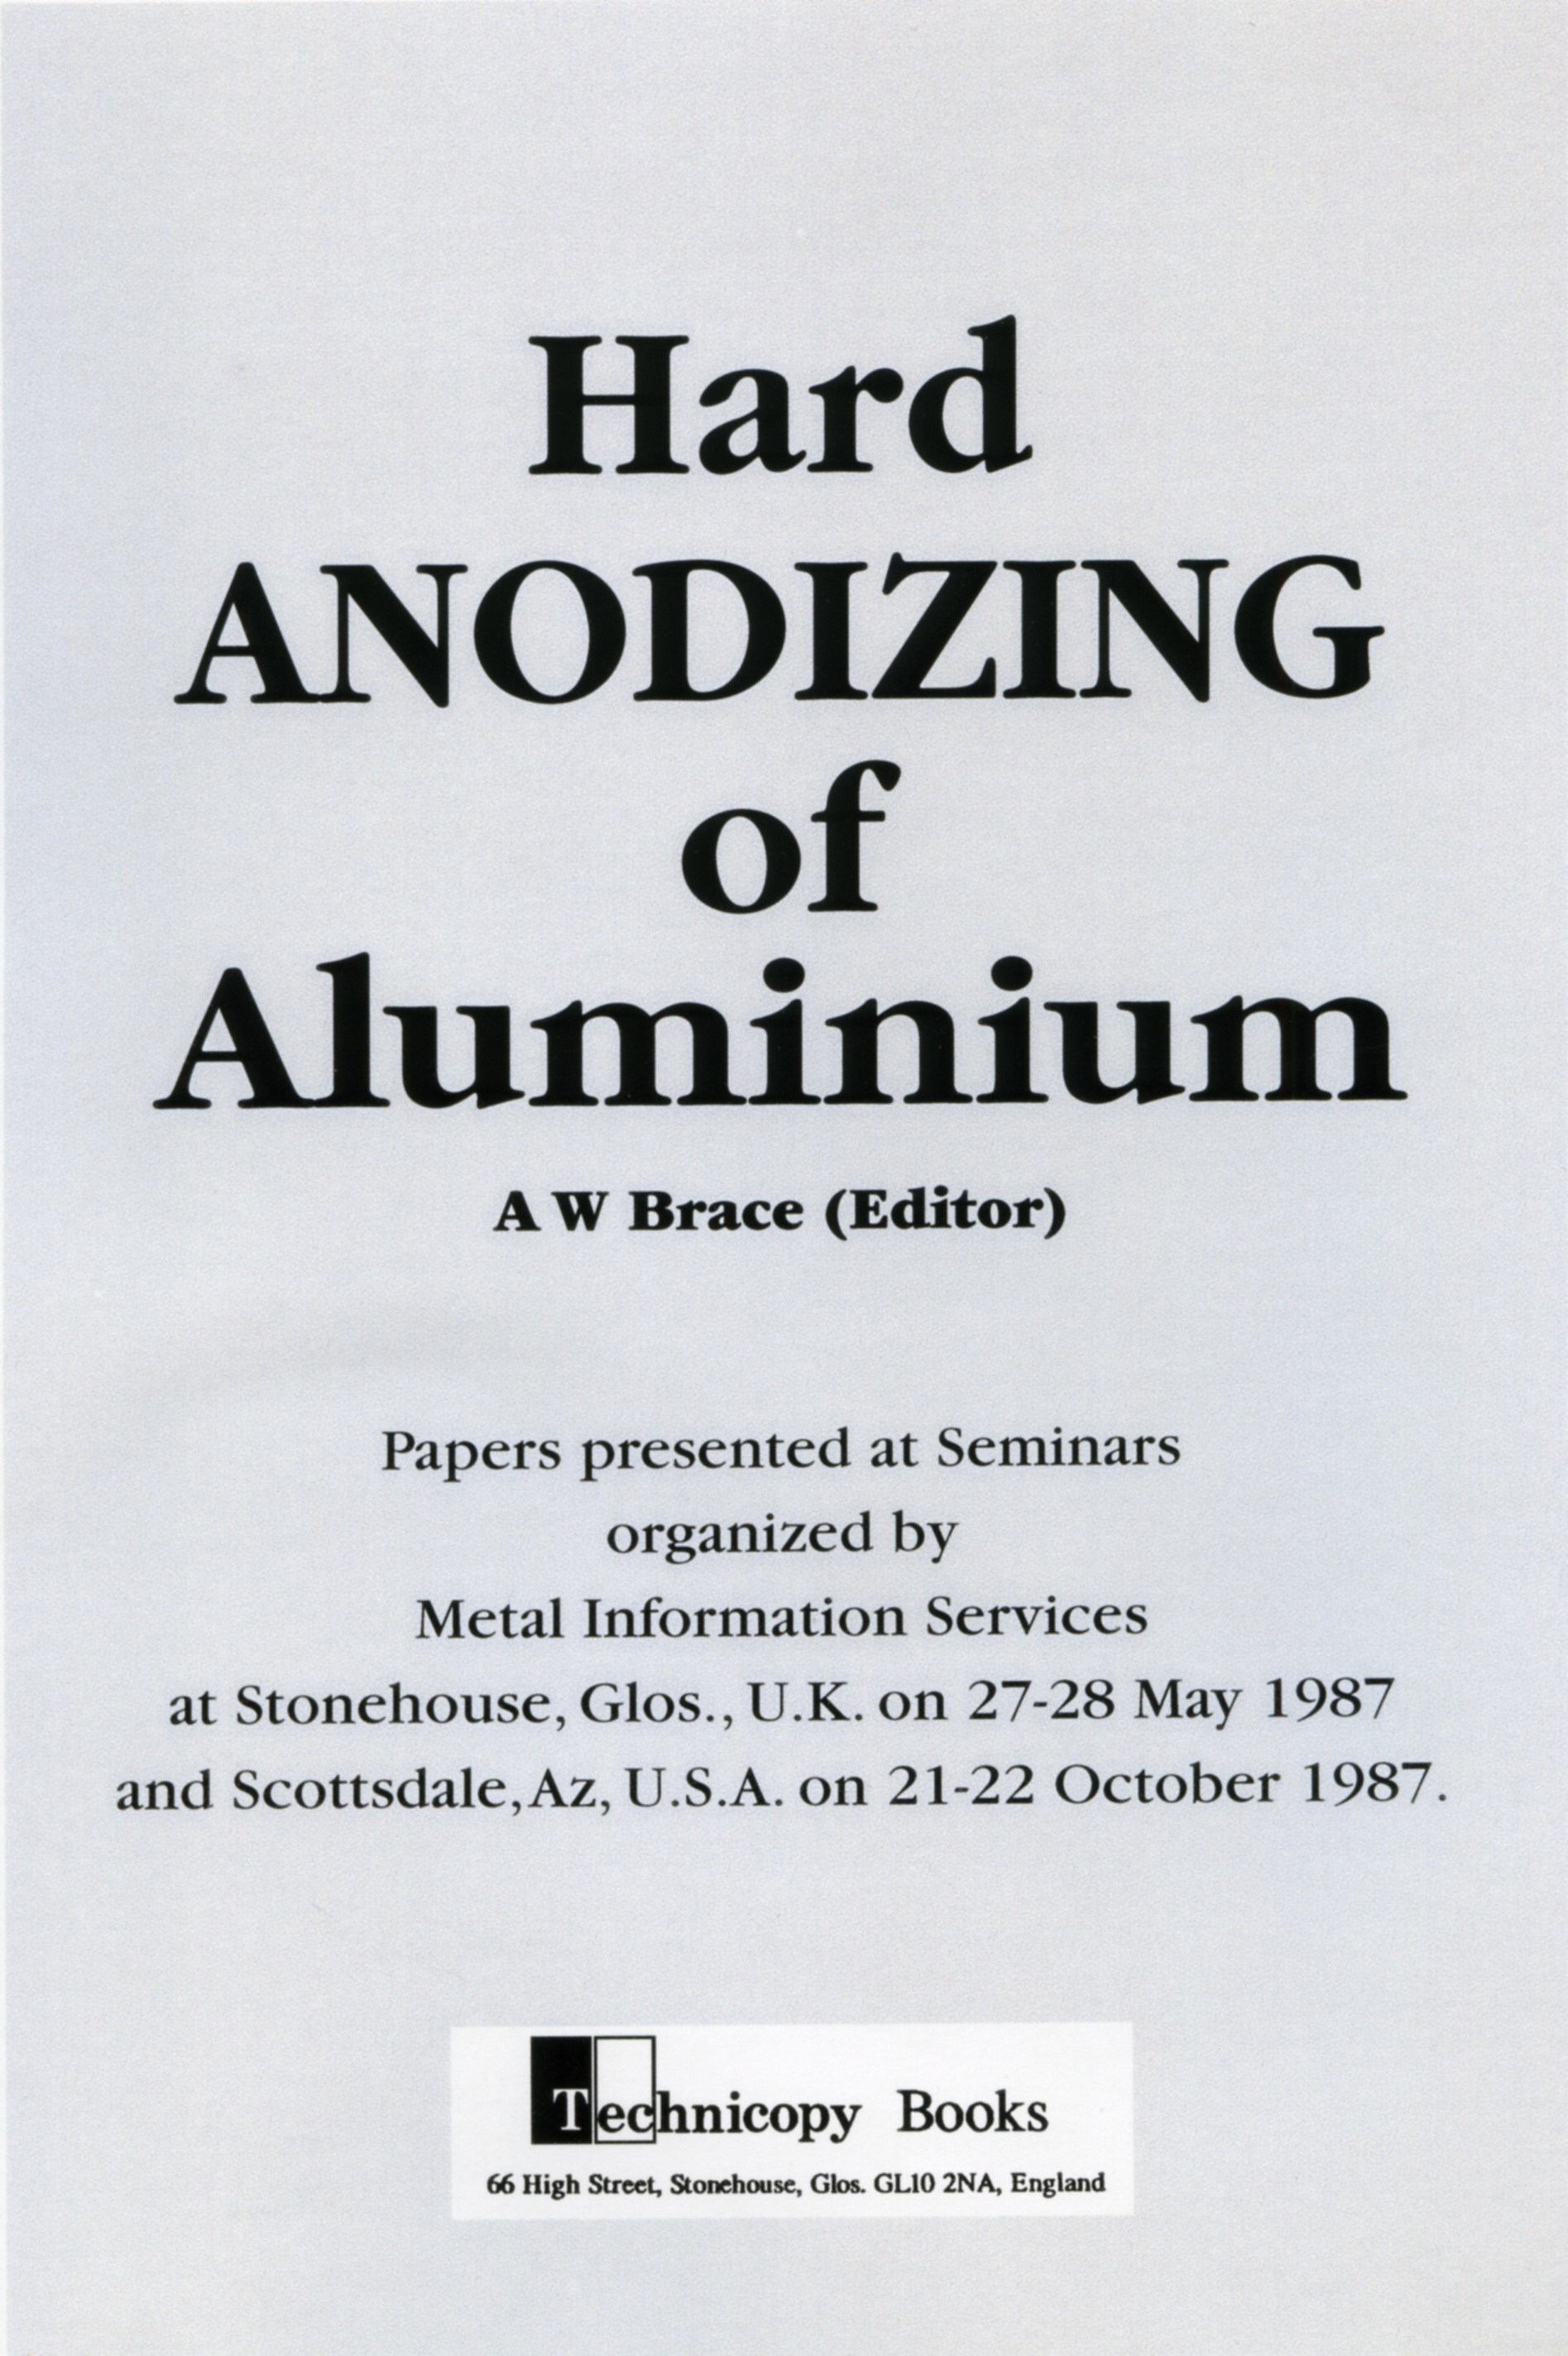 Hard Anodizing of Aluminium